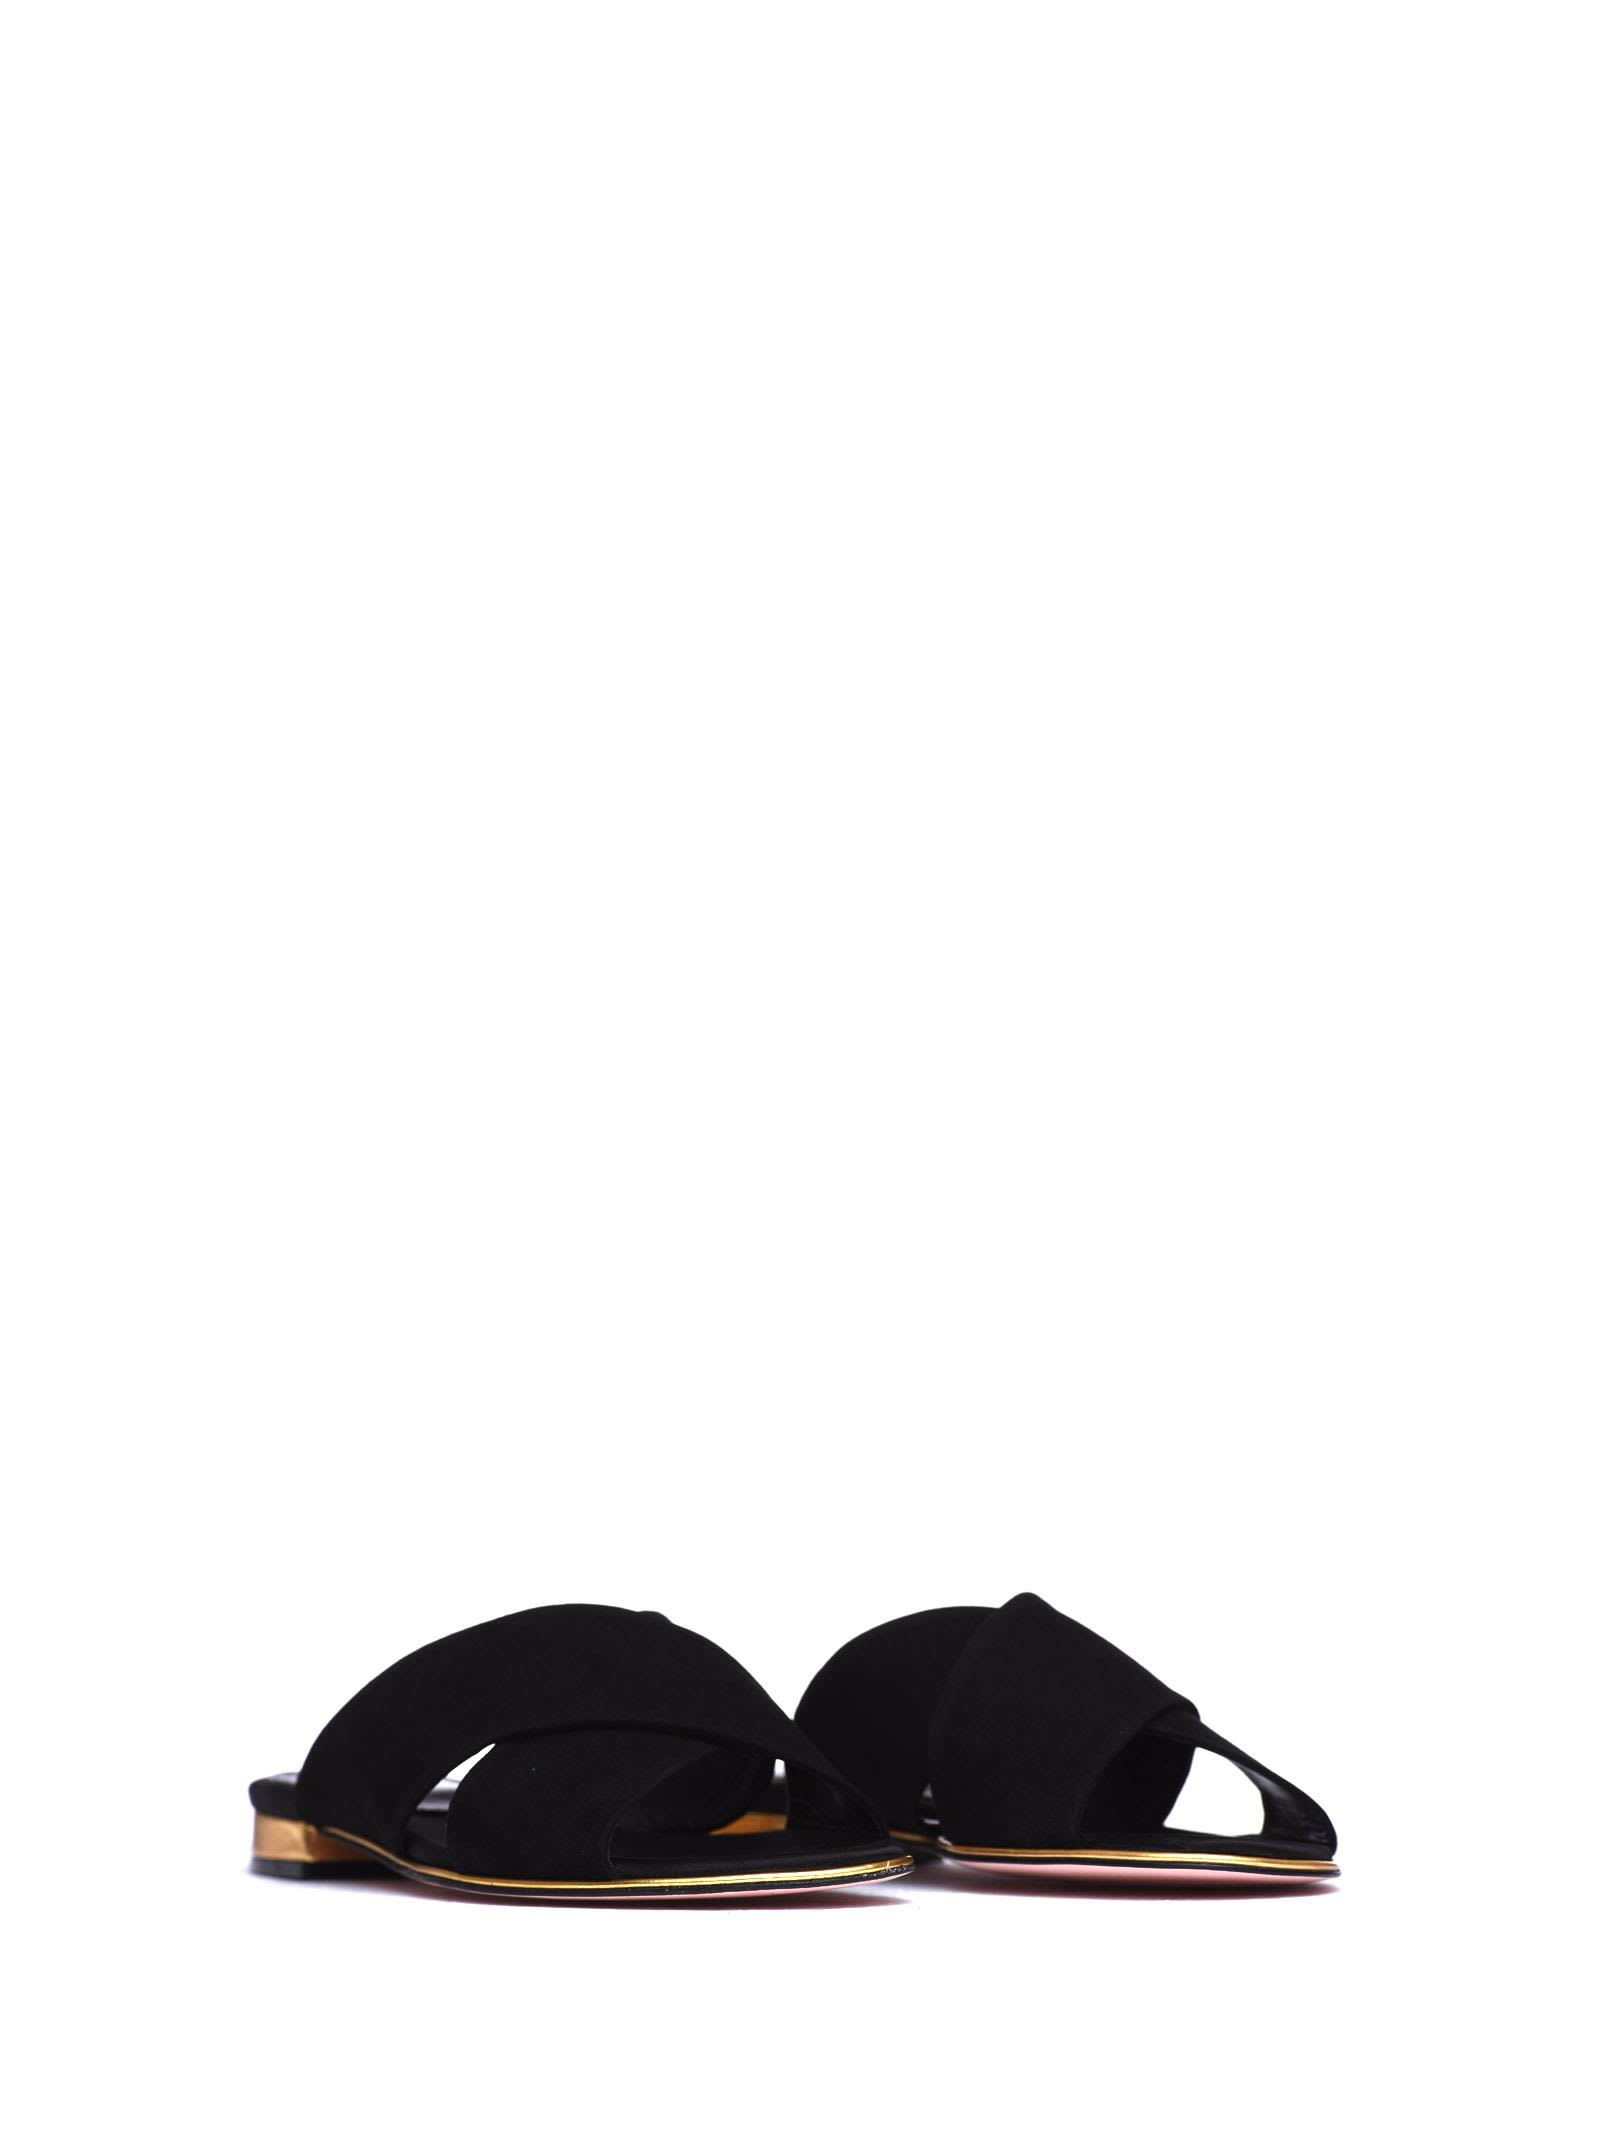 Real Sebastian Sebastian Slipper In Black Suede Outlet Supply Clearance Wholesale Price Outlet Hot Sale u3h0OE4kq